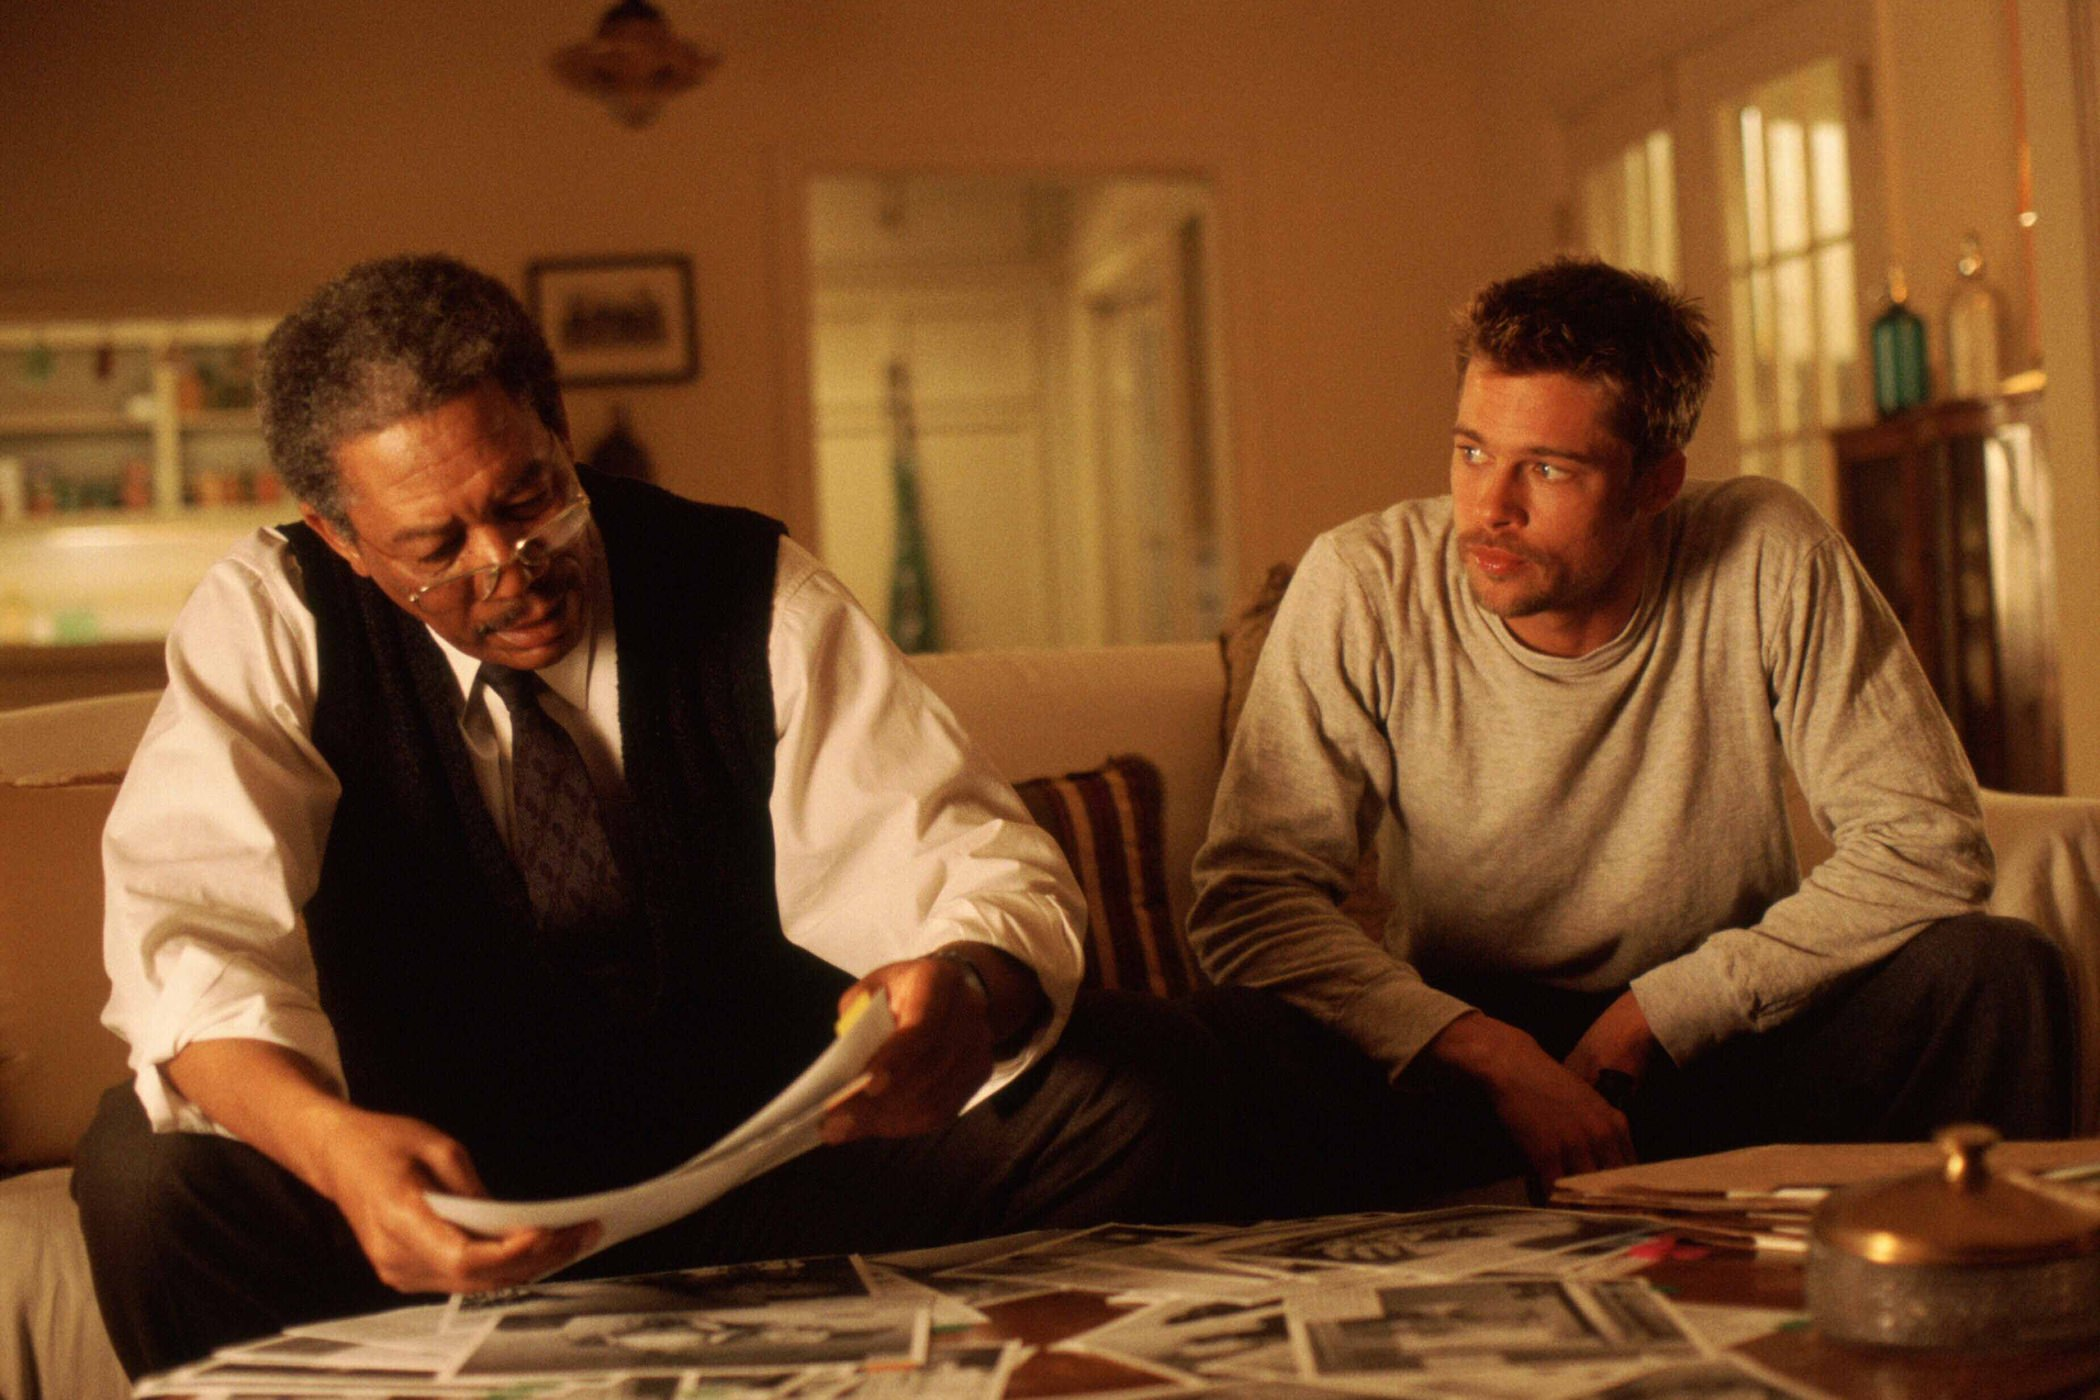 Seven morgan freeman brad pitt